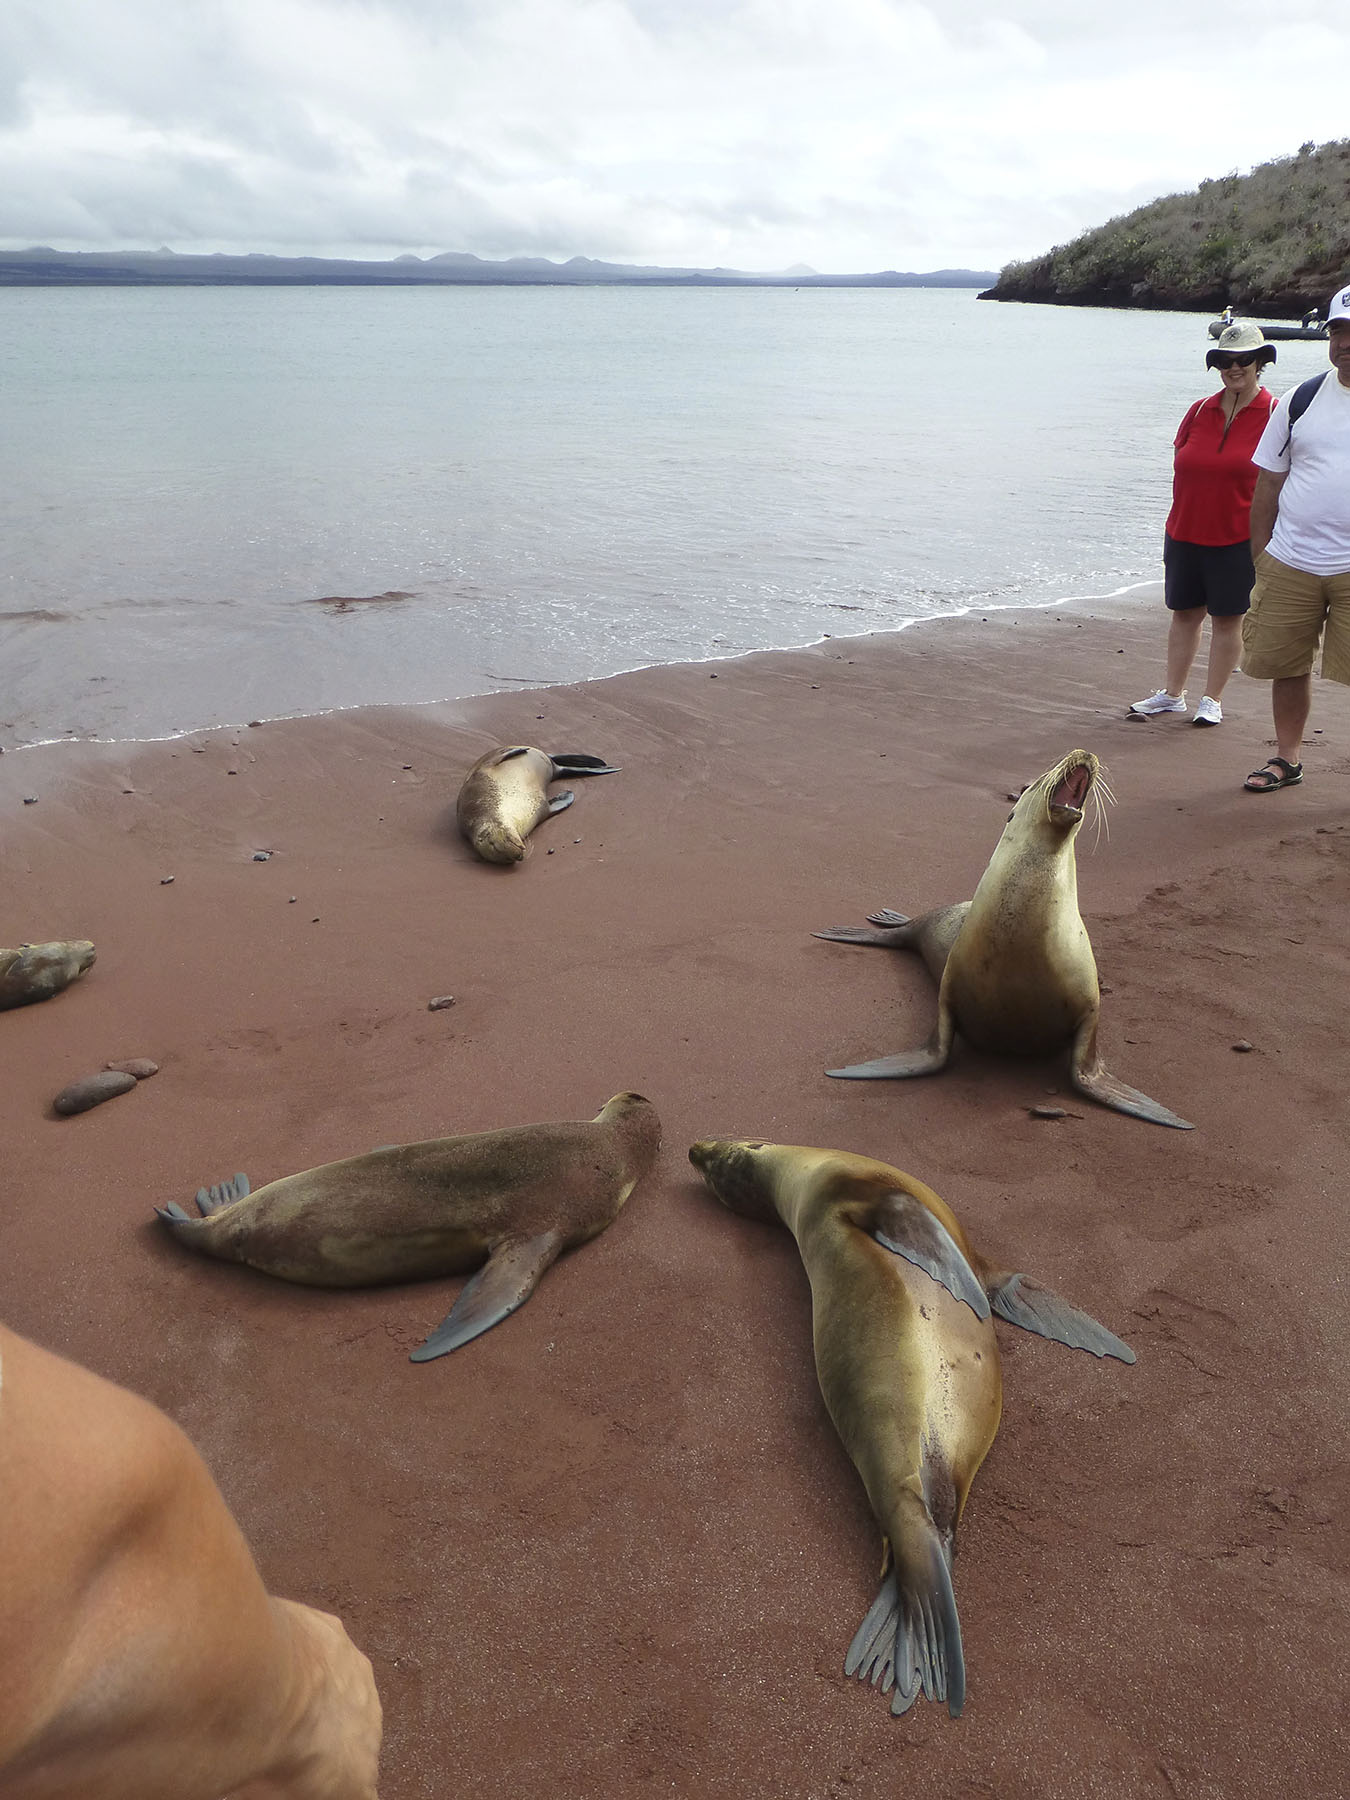 The sea lions at Rabida island have got a lot of spunk...after nap time.